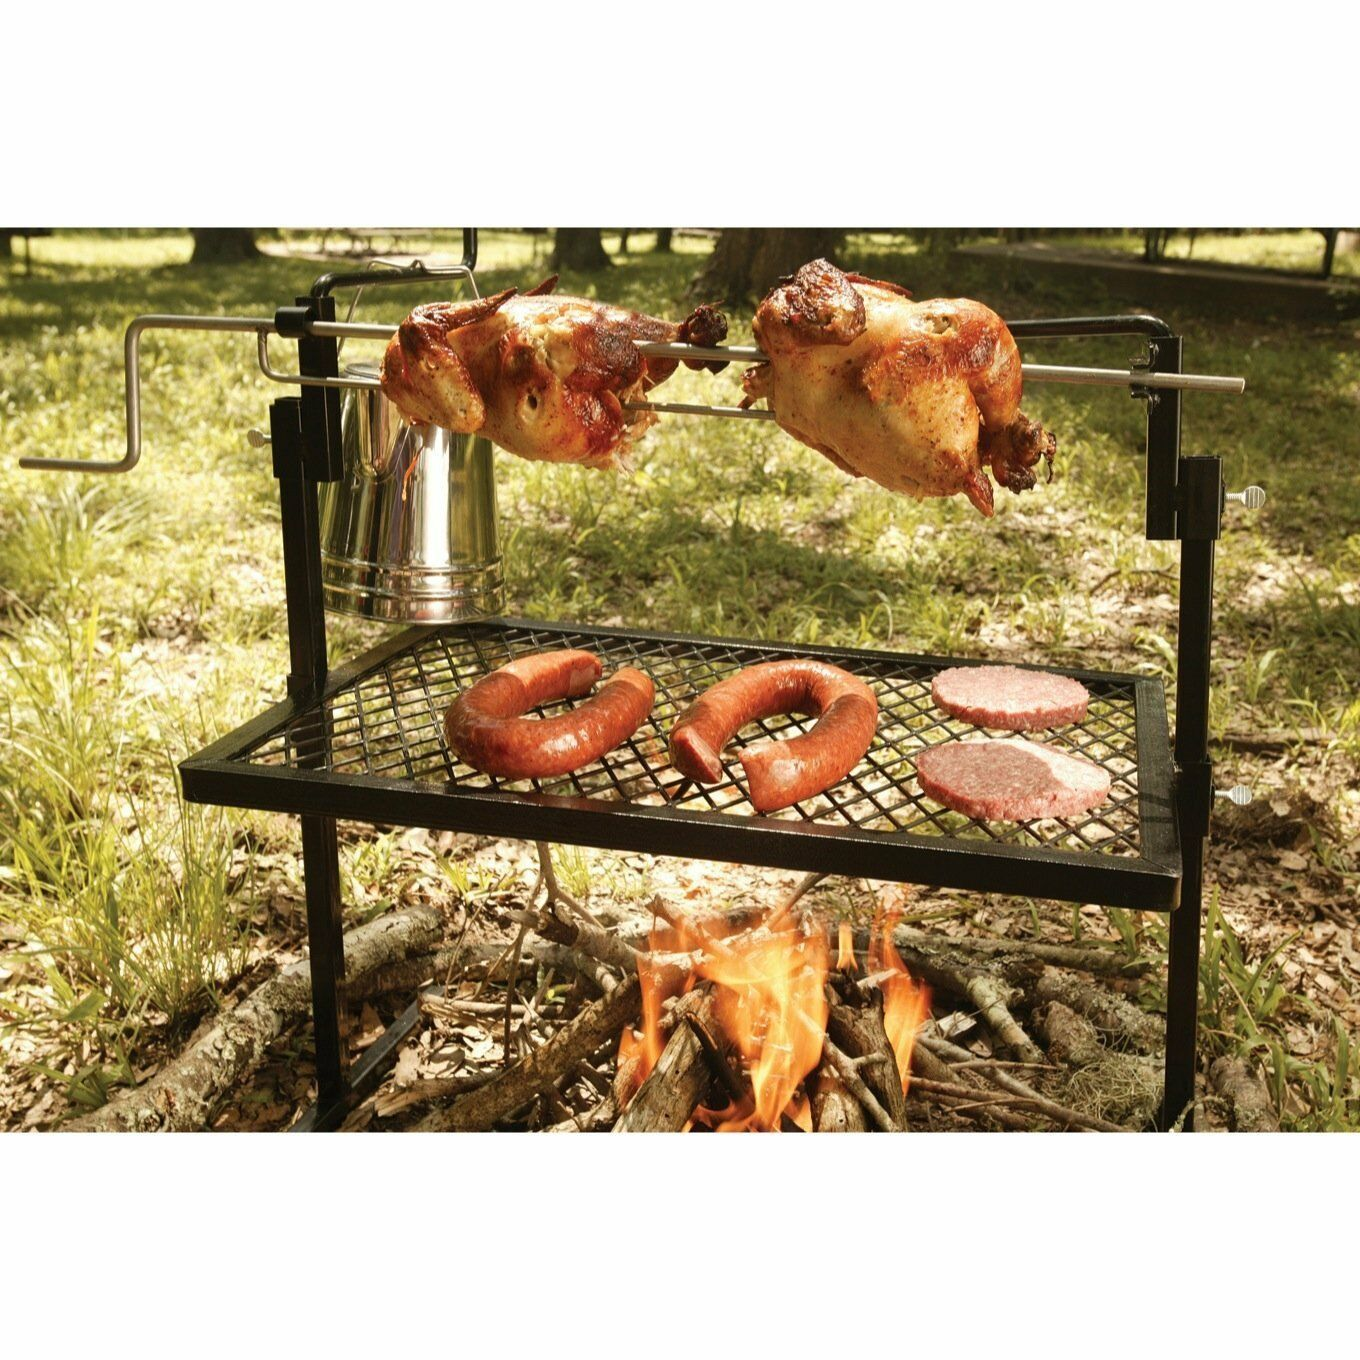 Campfire Cooking Heavy Duty redisserie Grill for Over Open Fire Outdoor Living